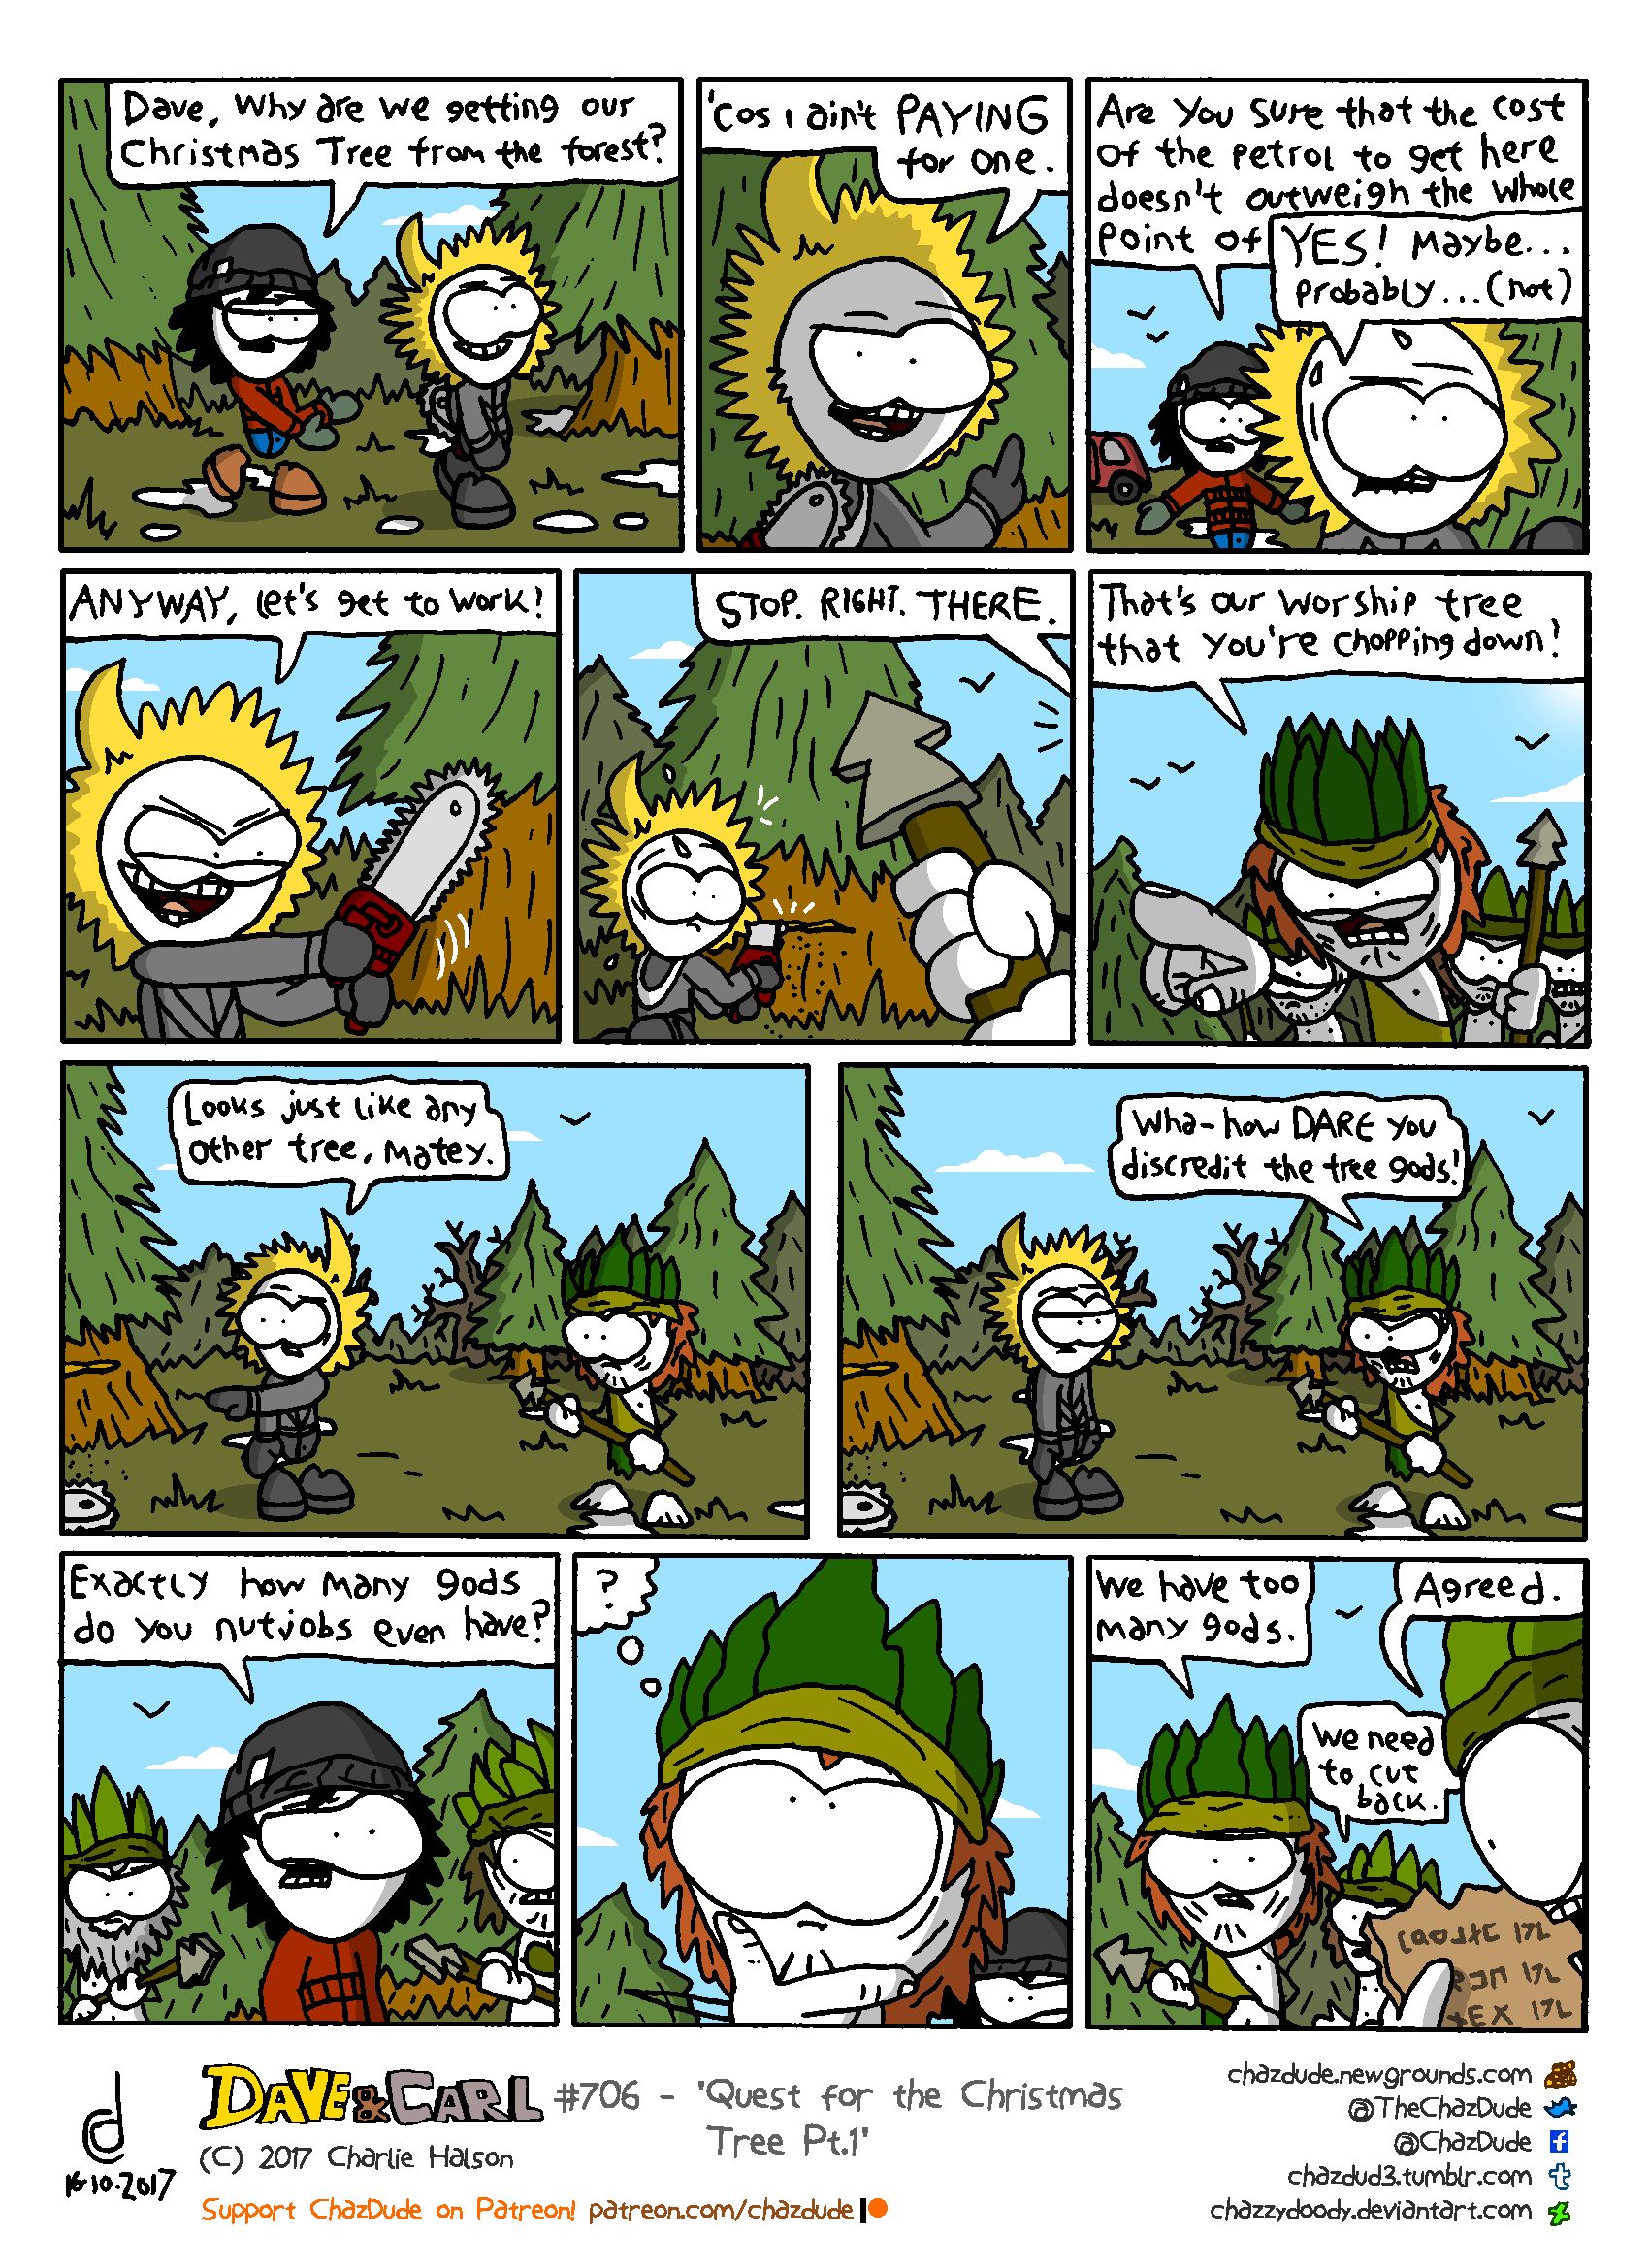 Quest for the Christmas Tree Pt.1